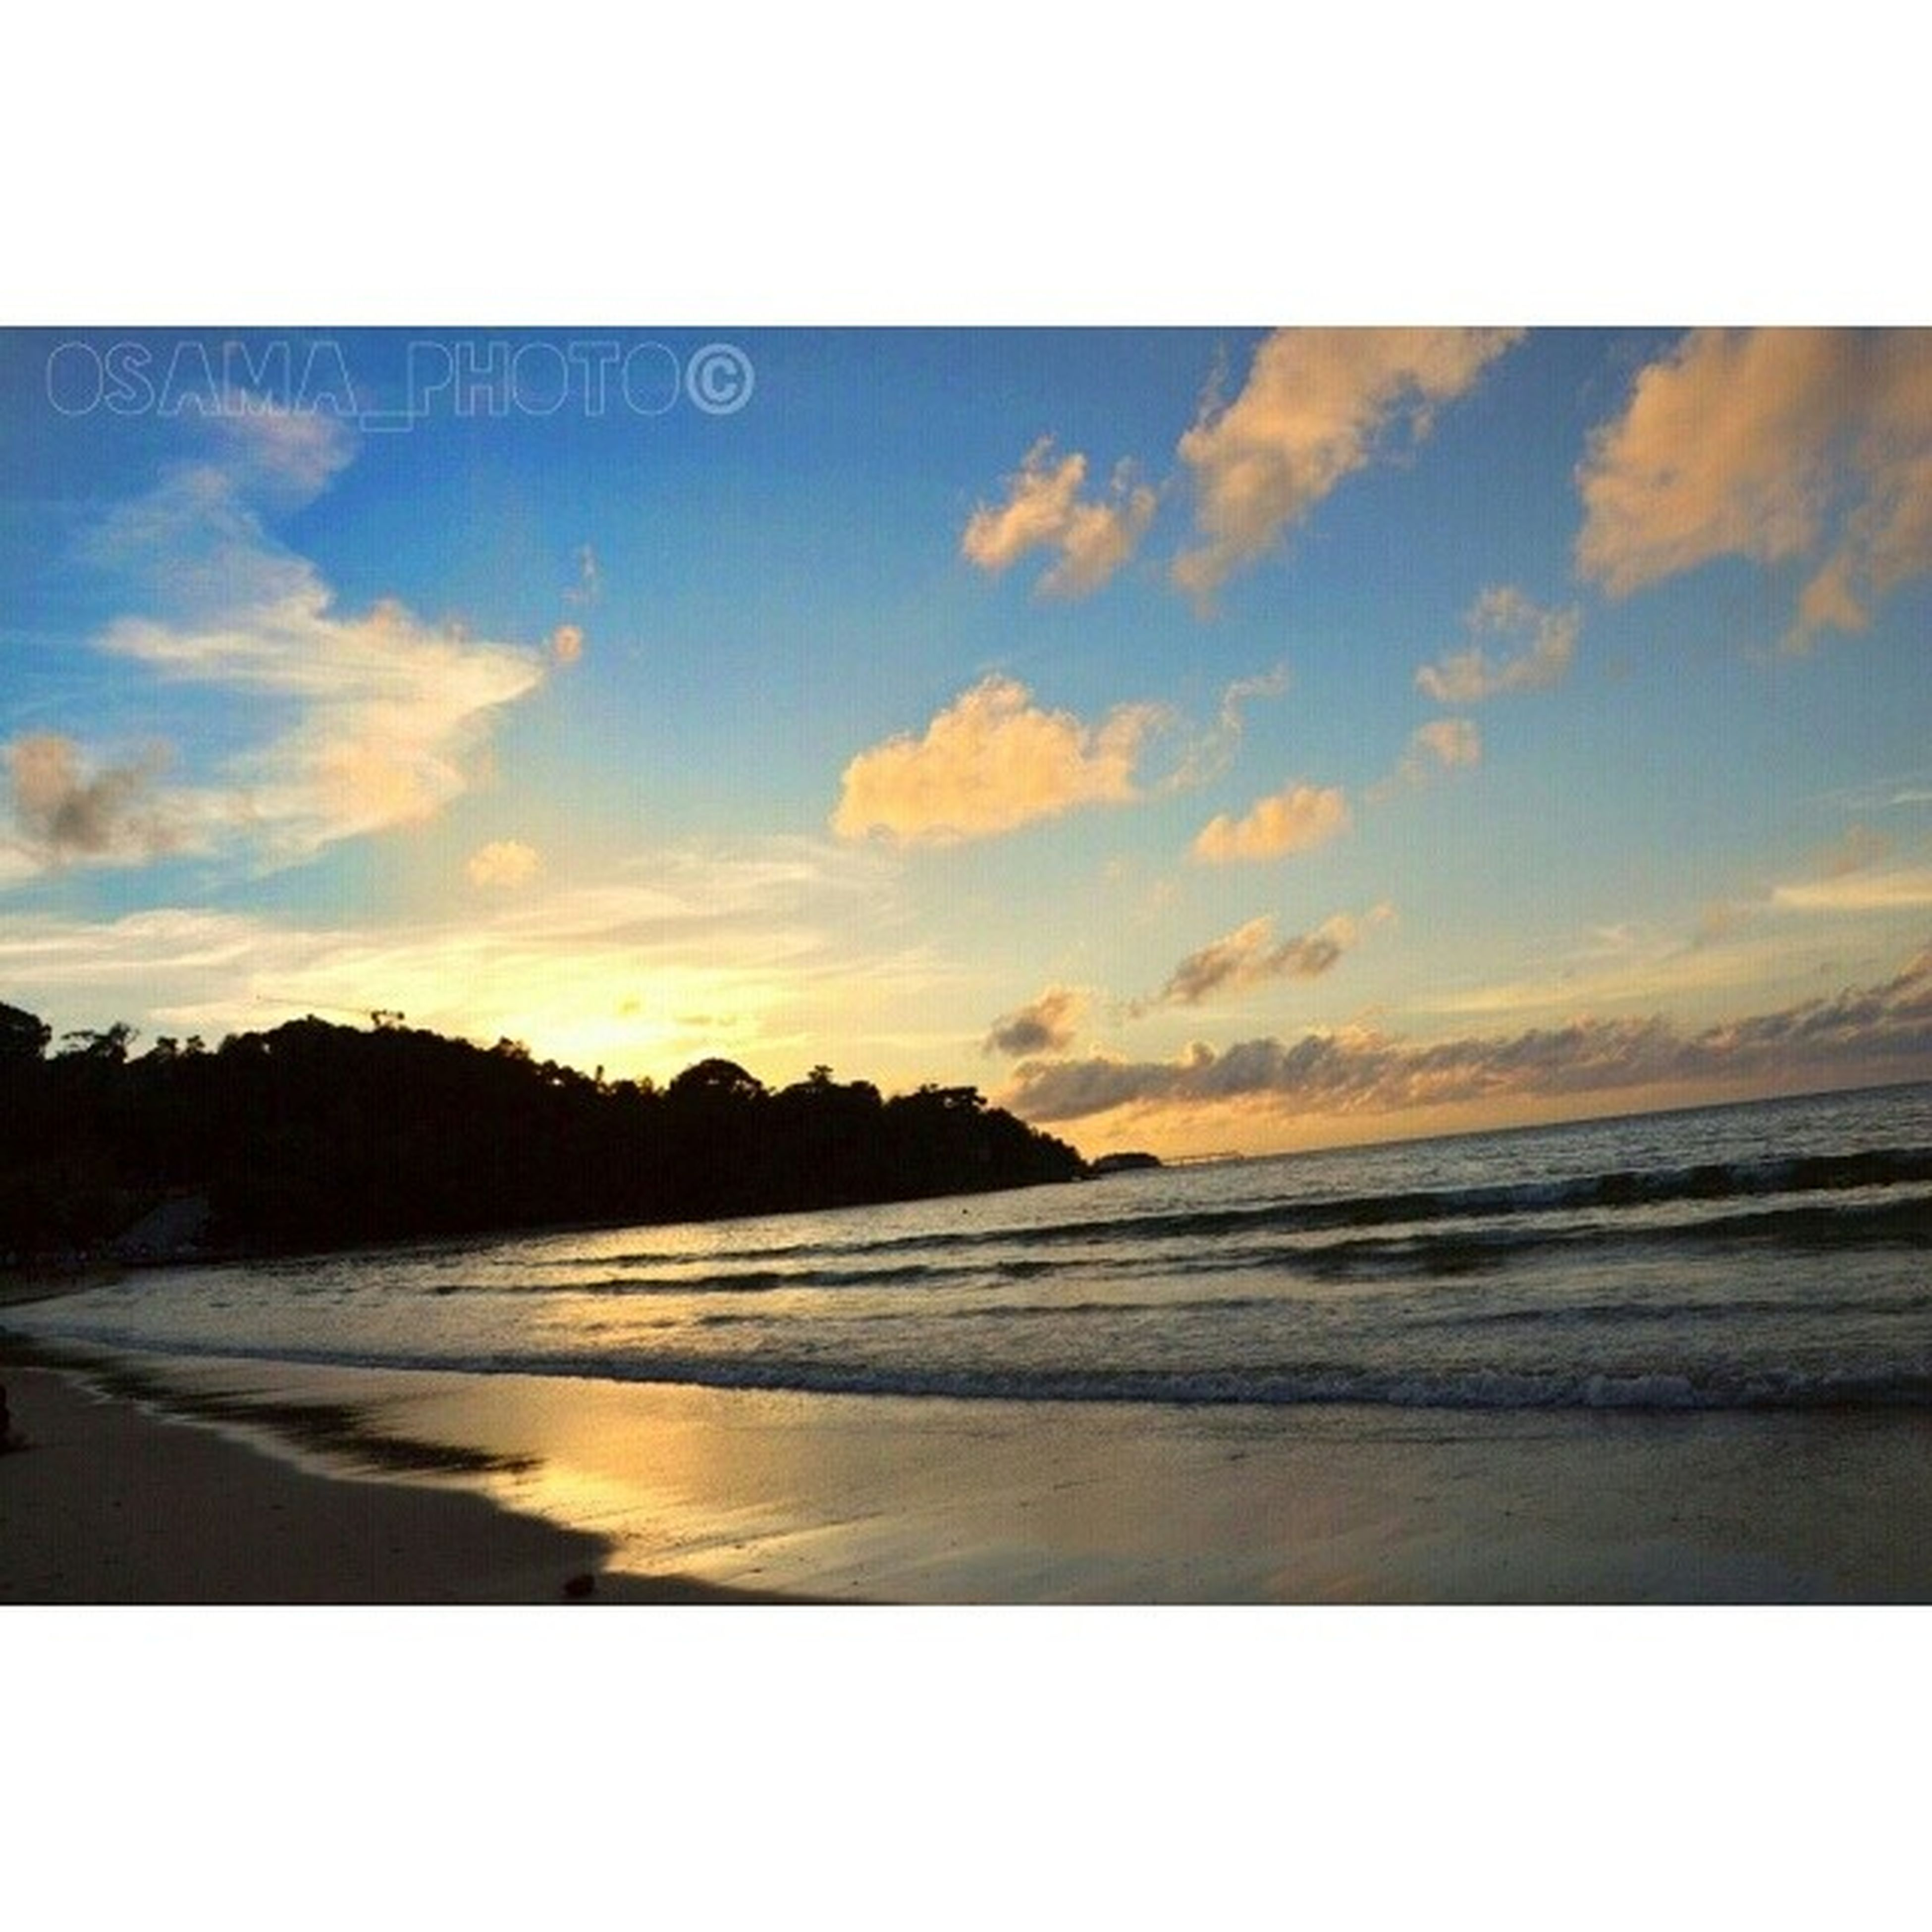 water, beach, sea, transfer print, scenics, tranquil scene, sky, beauty in nature, shore, tranquility, sunset, auto post production filter, horizon over water, nature, sand, idyllic, cloud - sky, coastline, wave, reflection